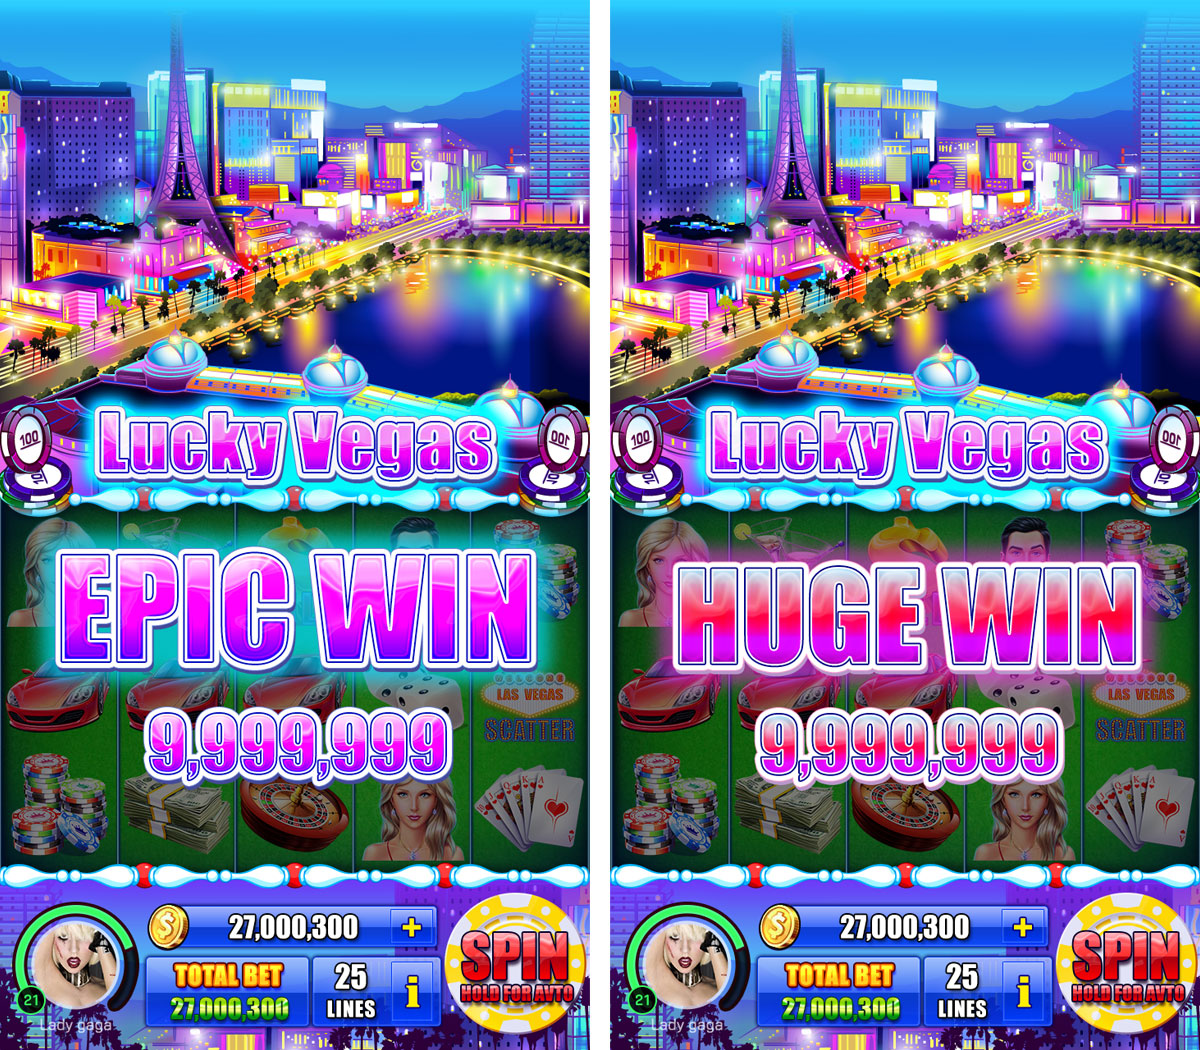 lucky_vegas_blog_win-3